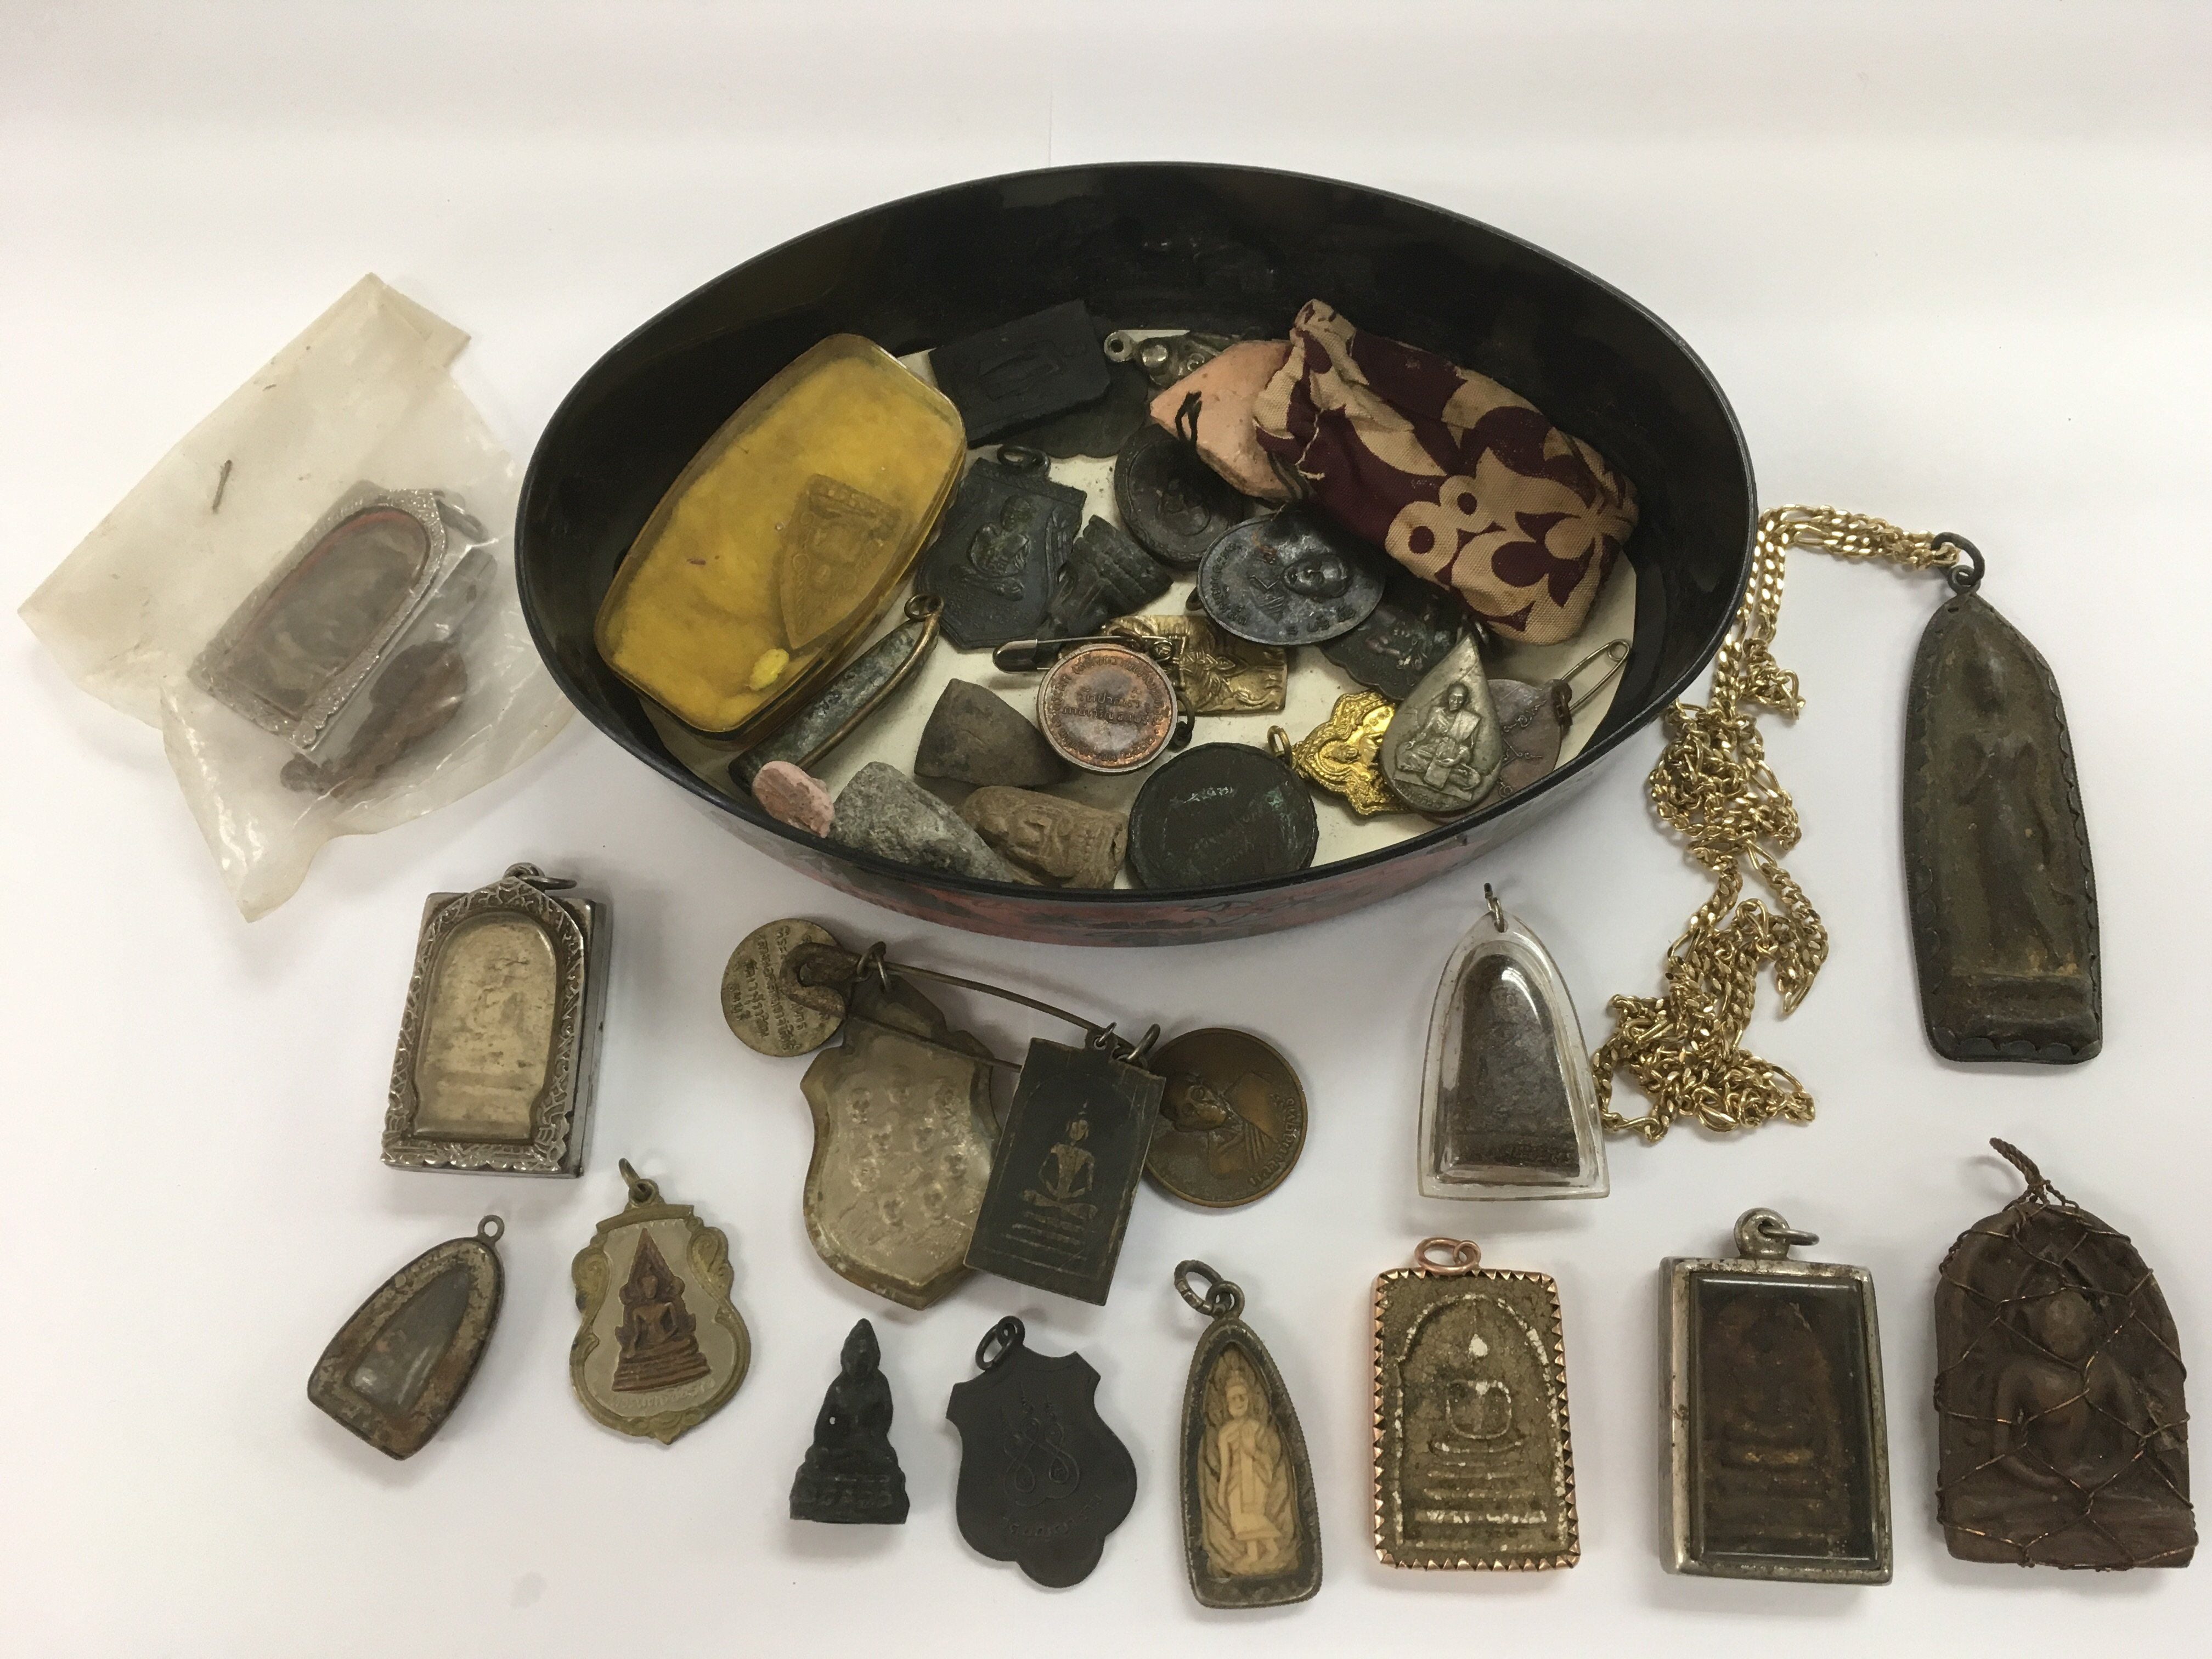 Lot 388 - A collection of old Buddha pendants and charms.